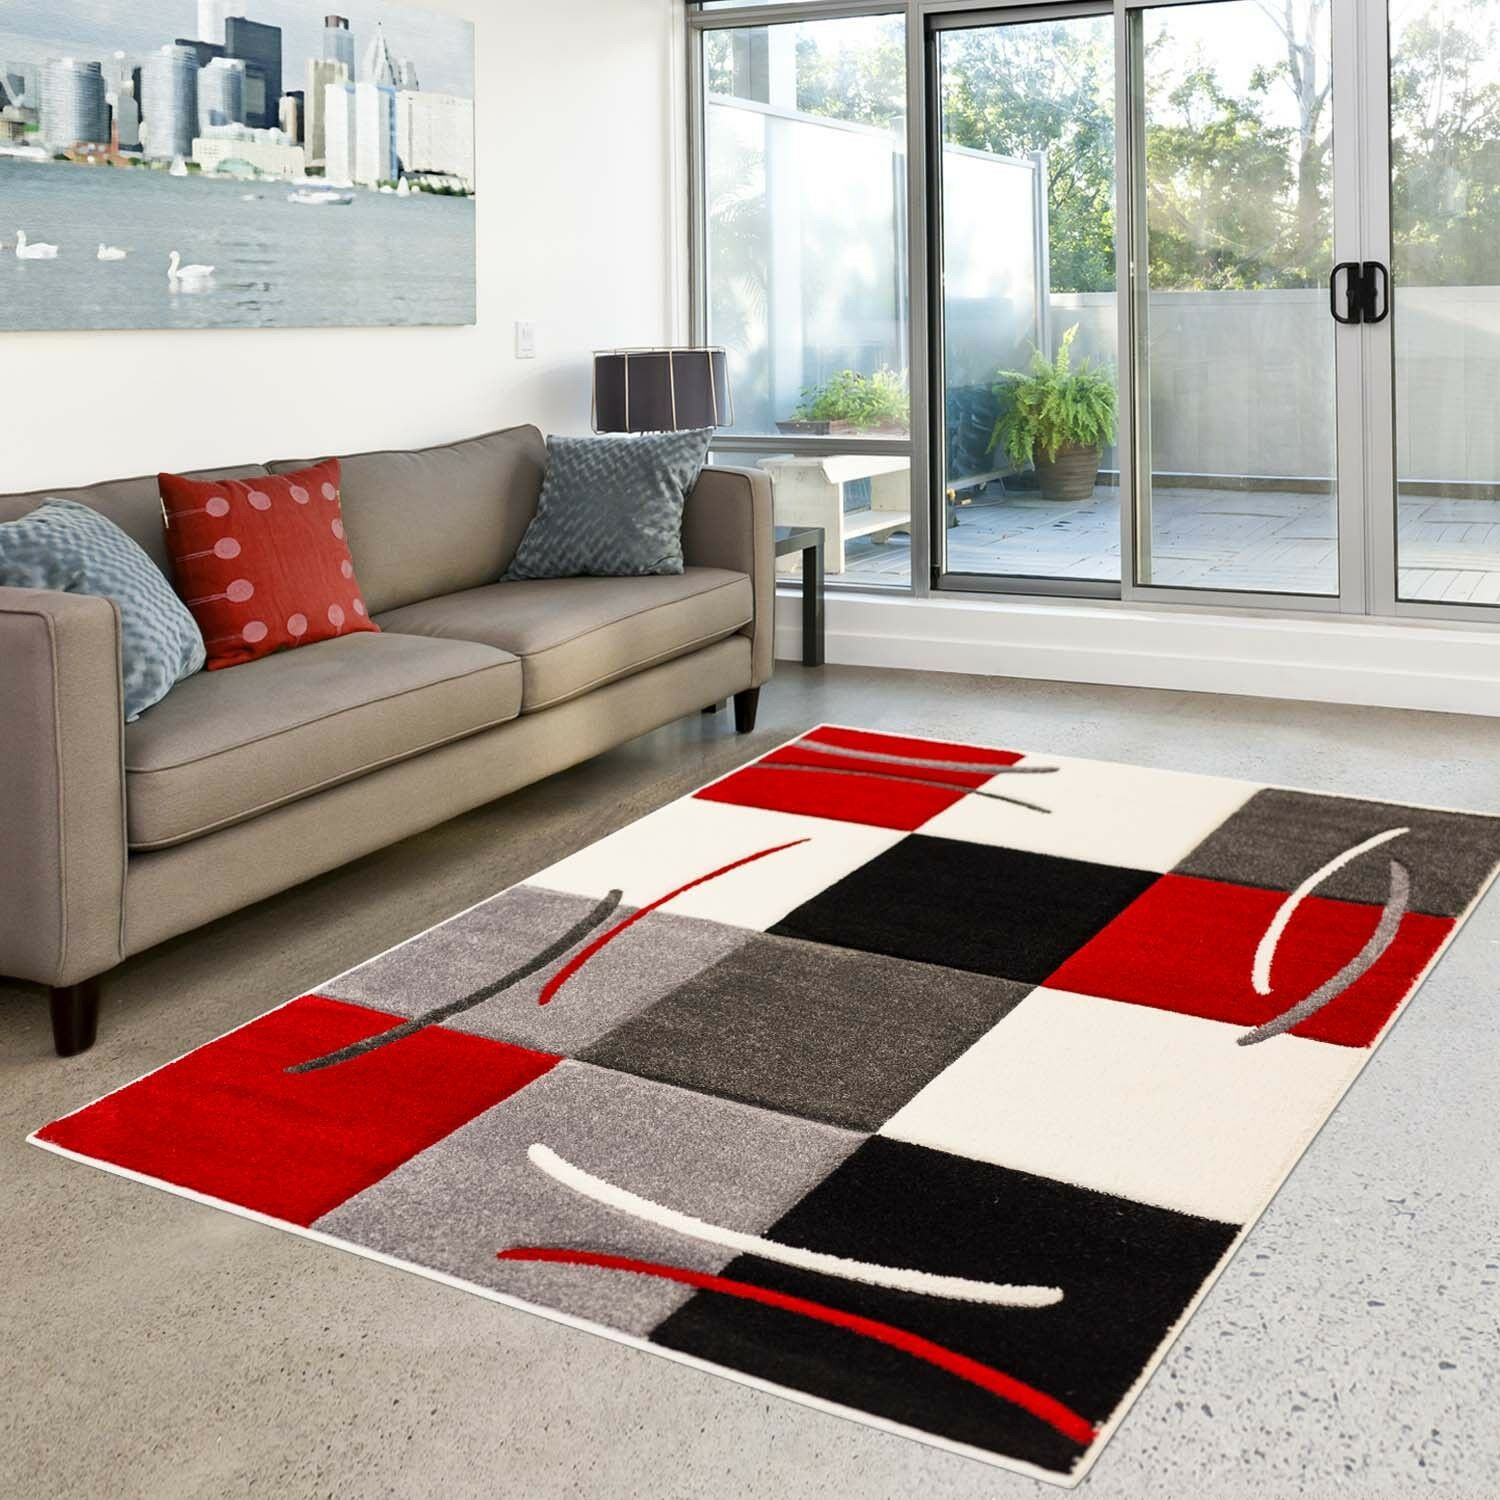 tapis moderne de haute qualit design salon mod le carreaux rouge grise cr me eur 39 58. Black Bedroom Furniture Sets. Home Design Ideas